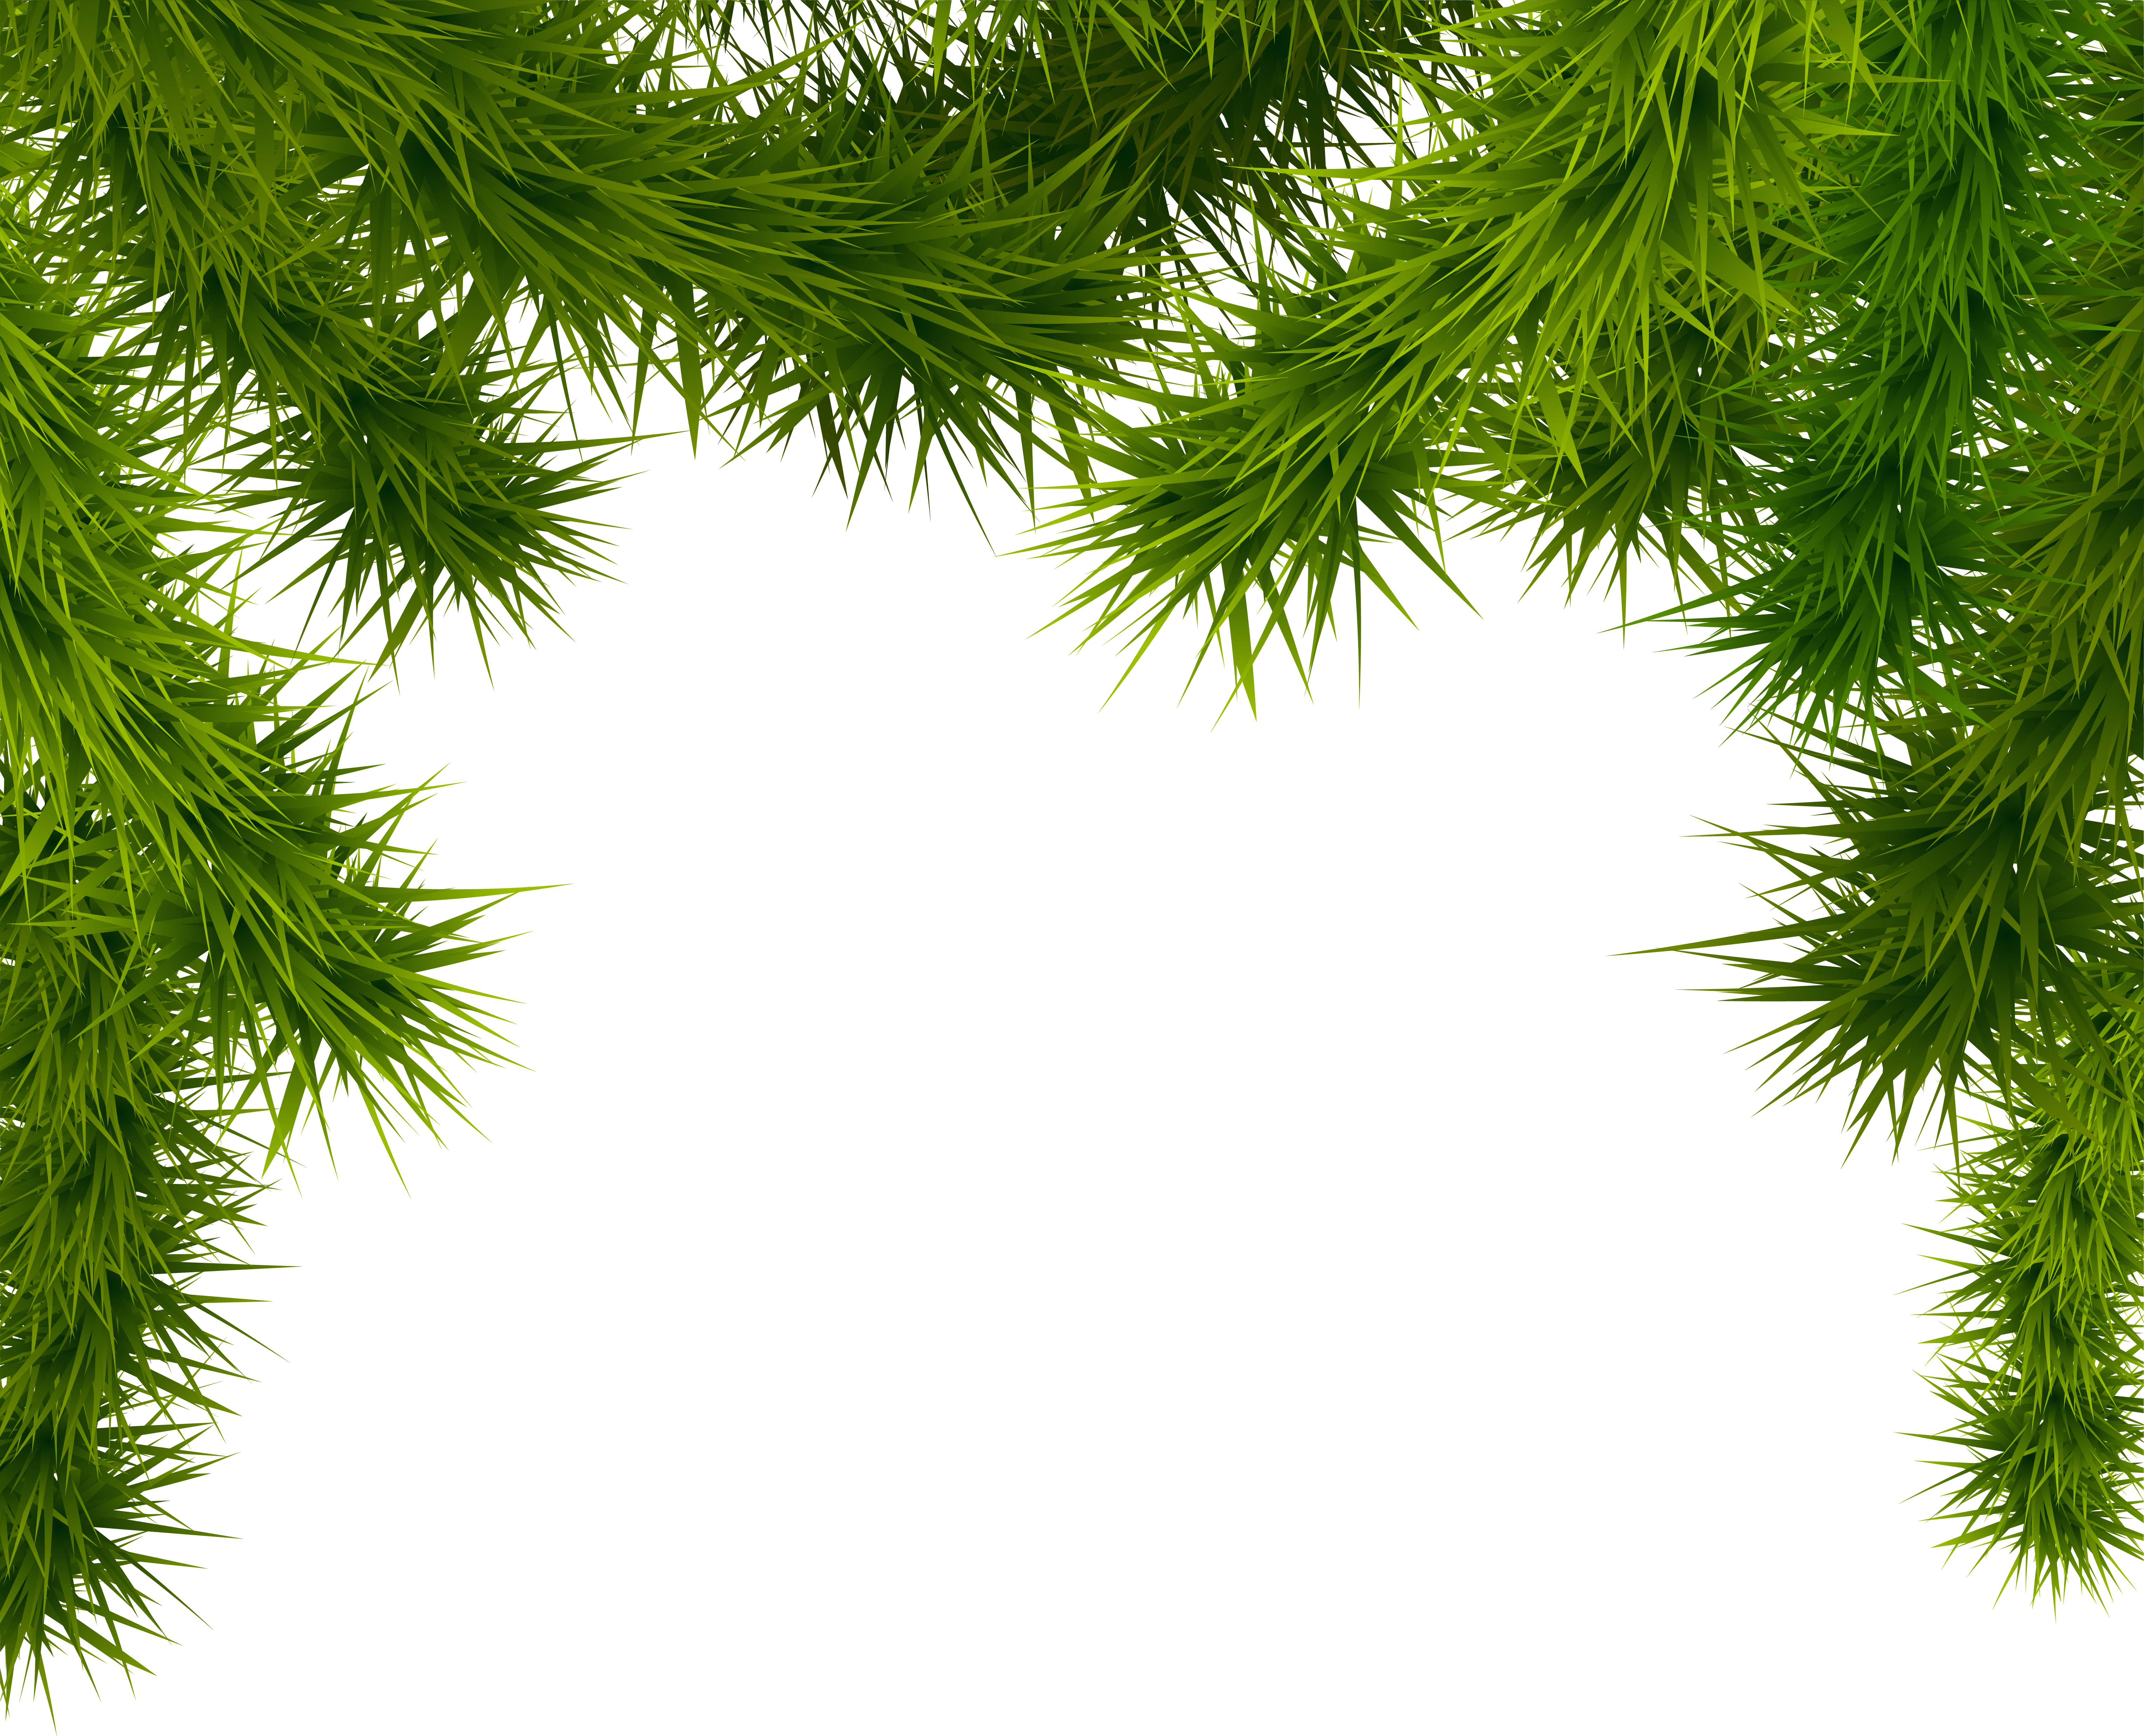 Pine branches png. Clipart image gallery yopriceville